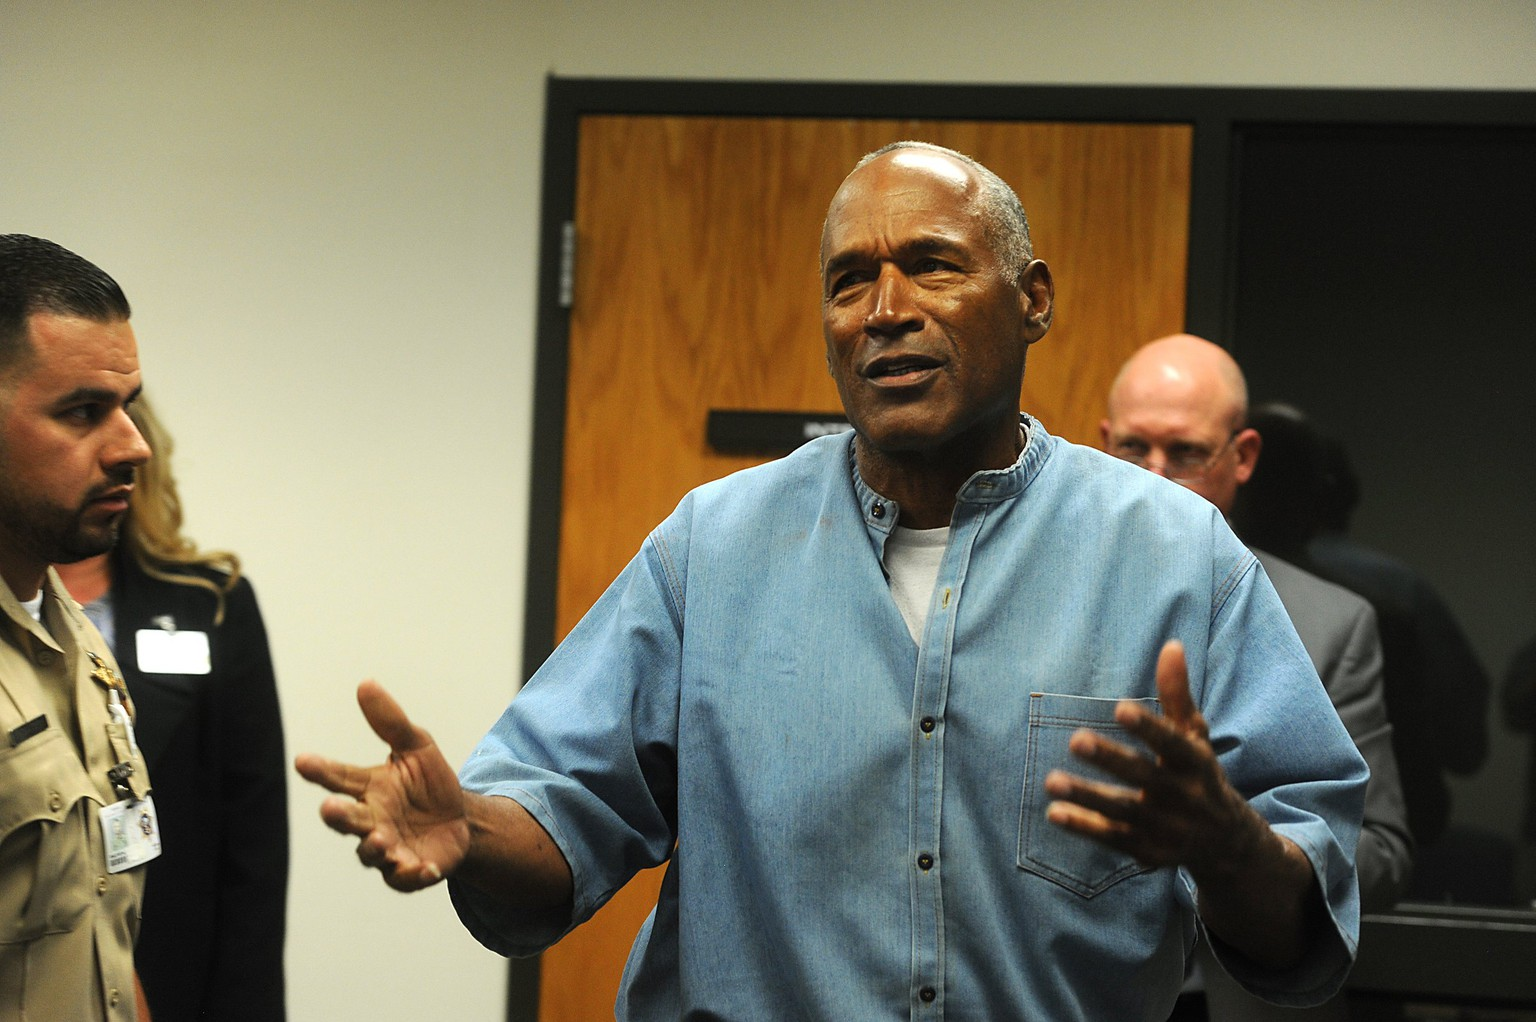 epa06100304 O.J. Simpson (R) reacts after learning he was granted parole at Lovelock Correctional Center (LCC), in Lovelock, Nevada, USA, 20 July 2017. Simpson, 70, is serving a nine to 33 year prison term for a 2007 armed robbery and kidnapping conviction.  EPA/JASON BEAN/RENO GAZETTE-JOURNAL / POOL